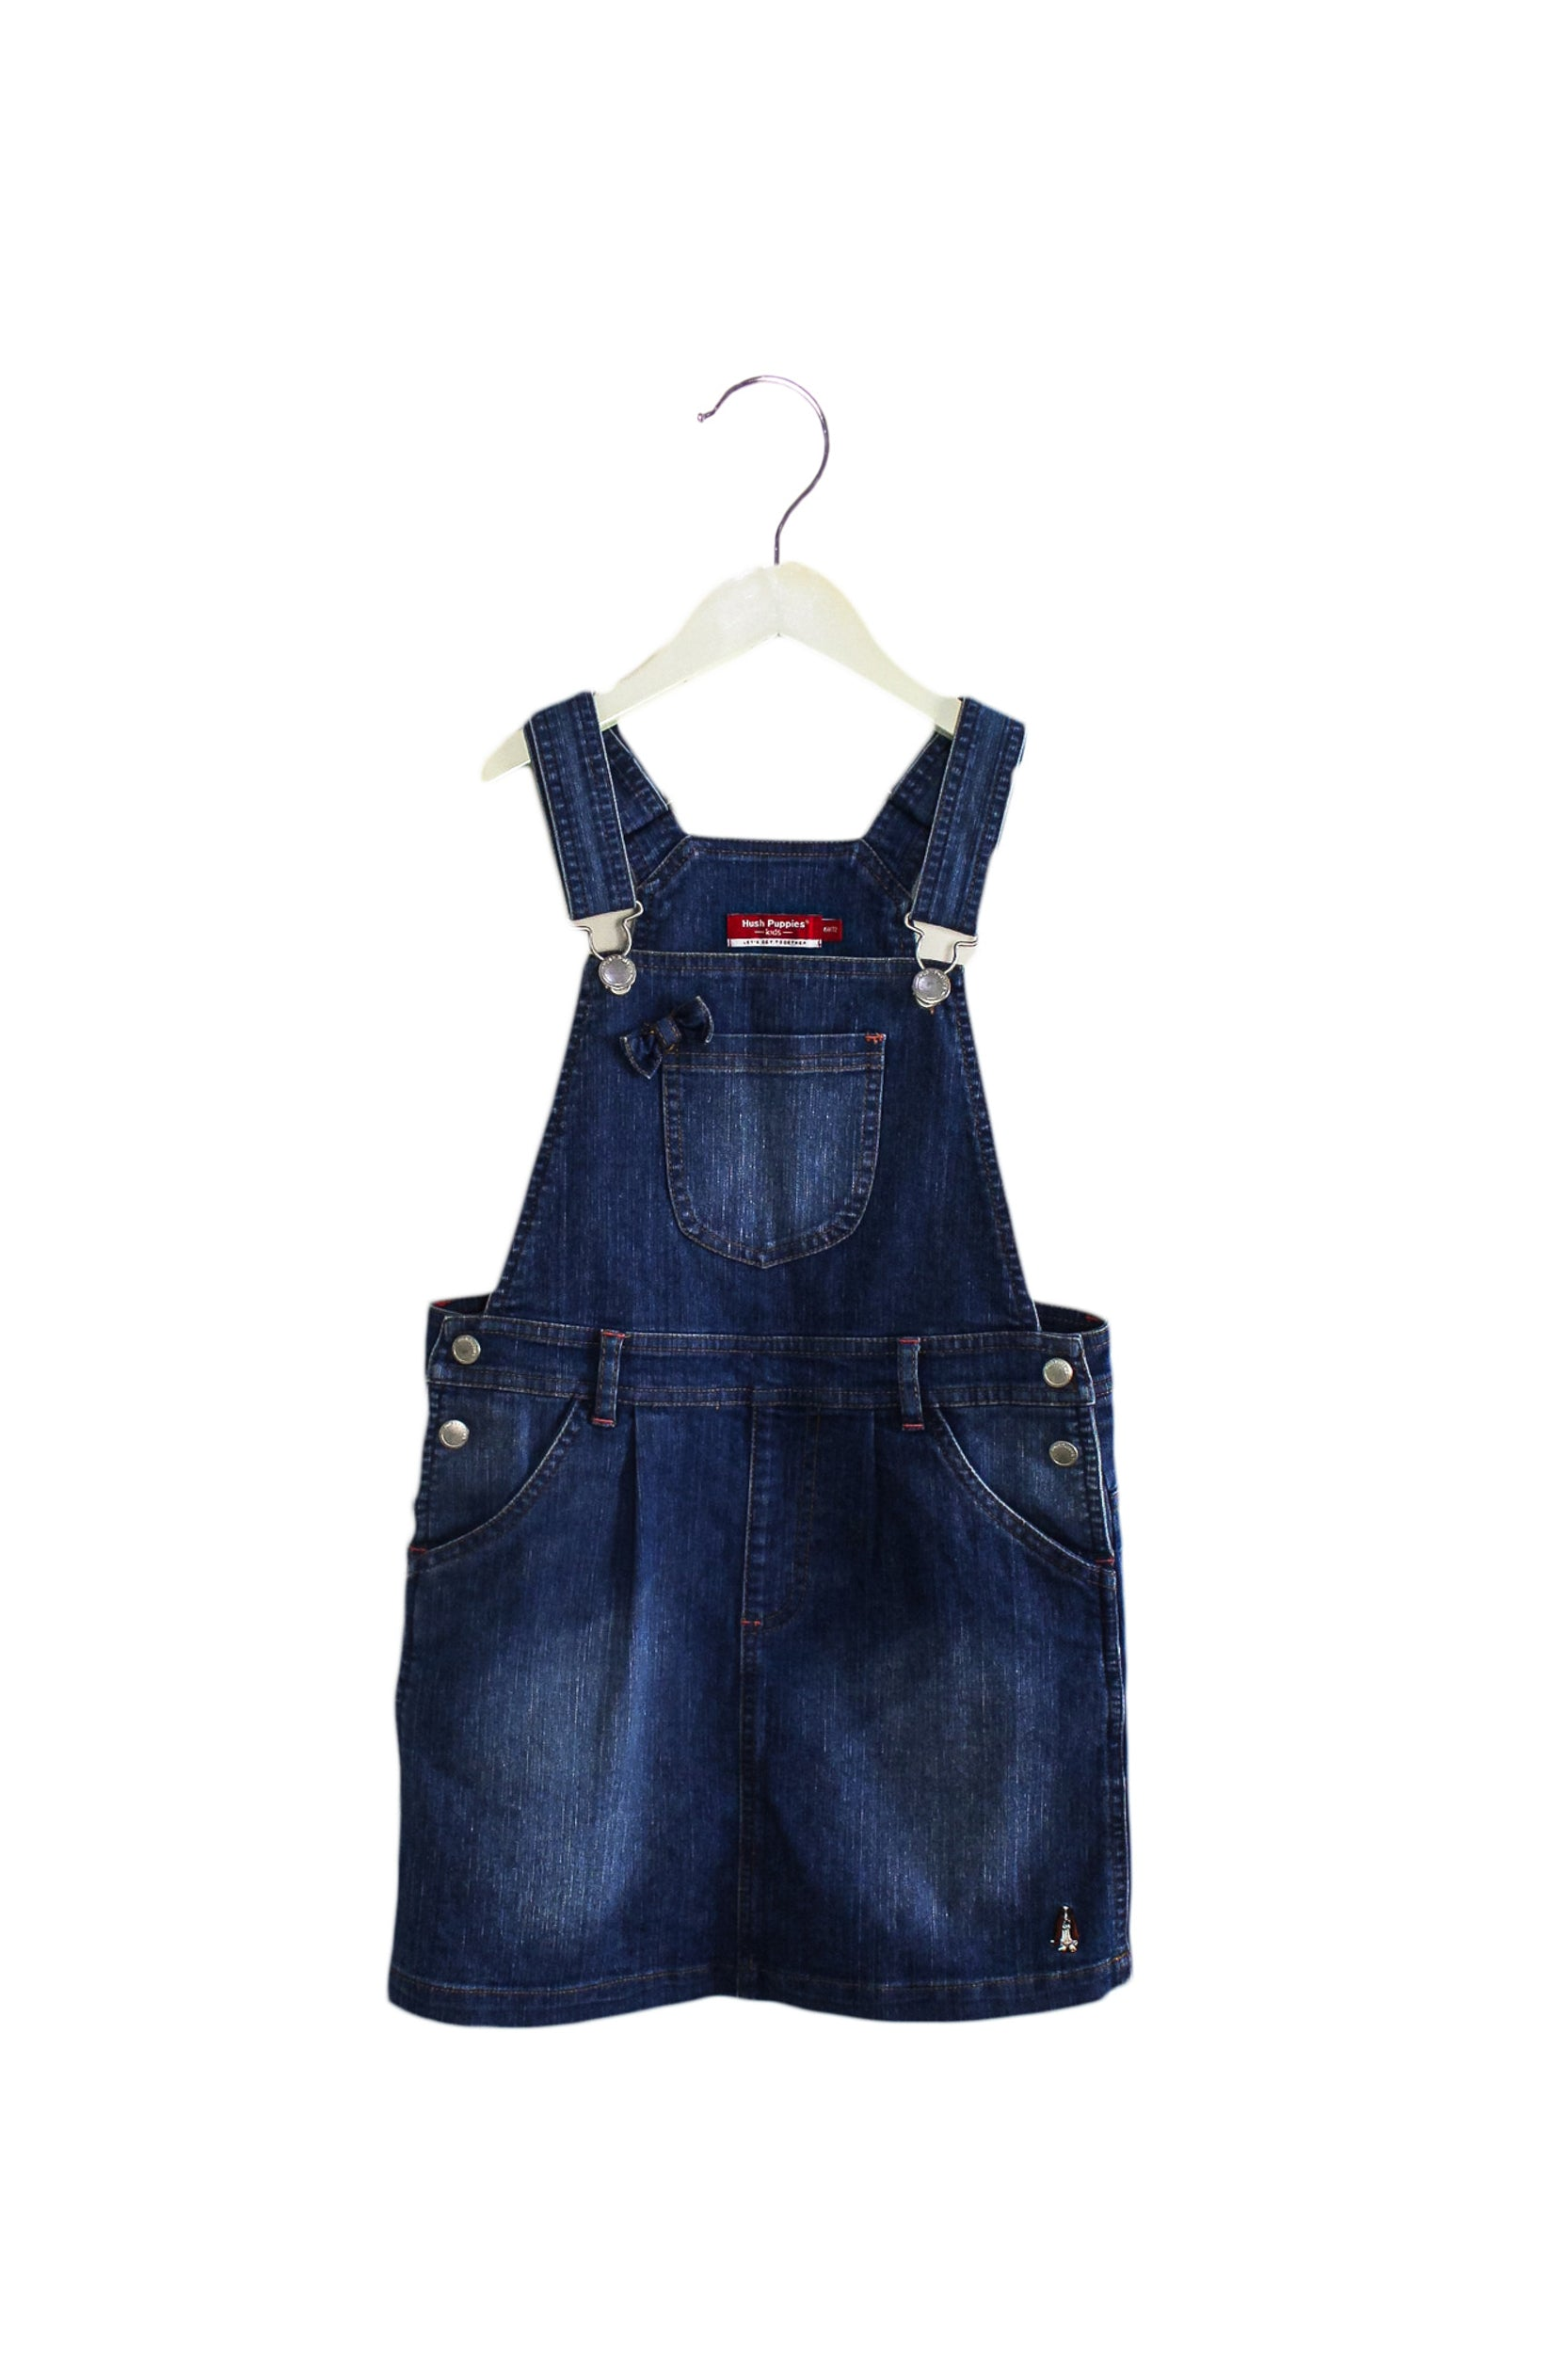 Hush Puppies Overall Dress 11Y (150cm)